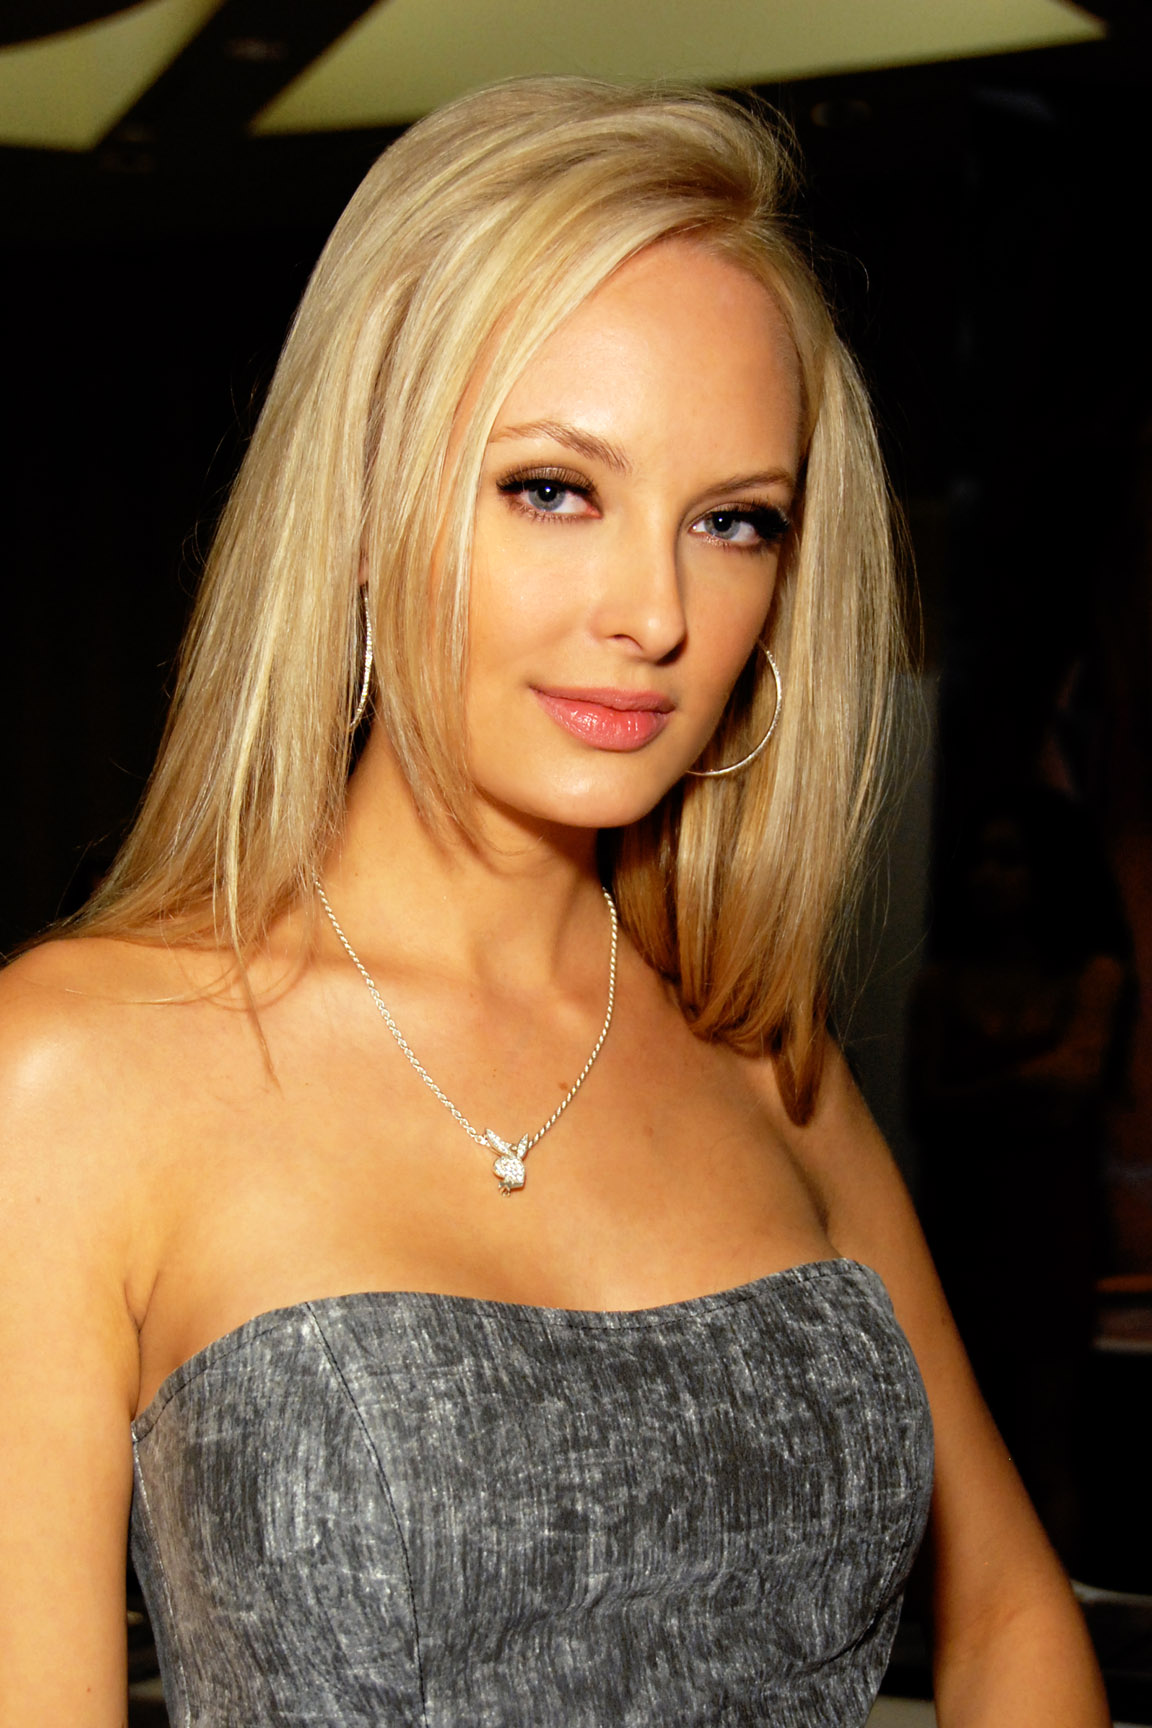 File:Shera Bechard 2010.jpg - Wikimedia Commons